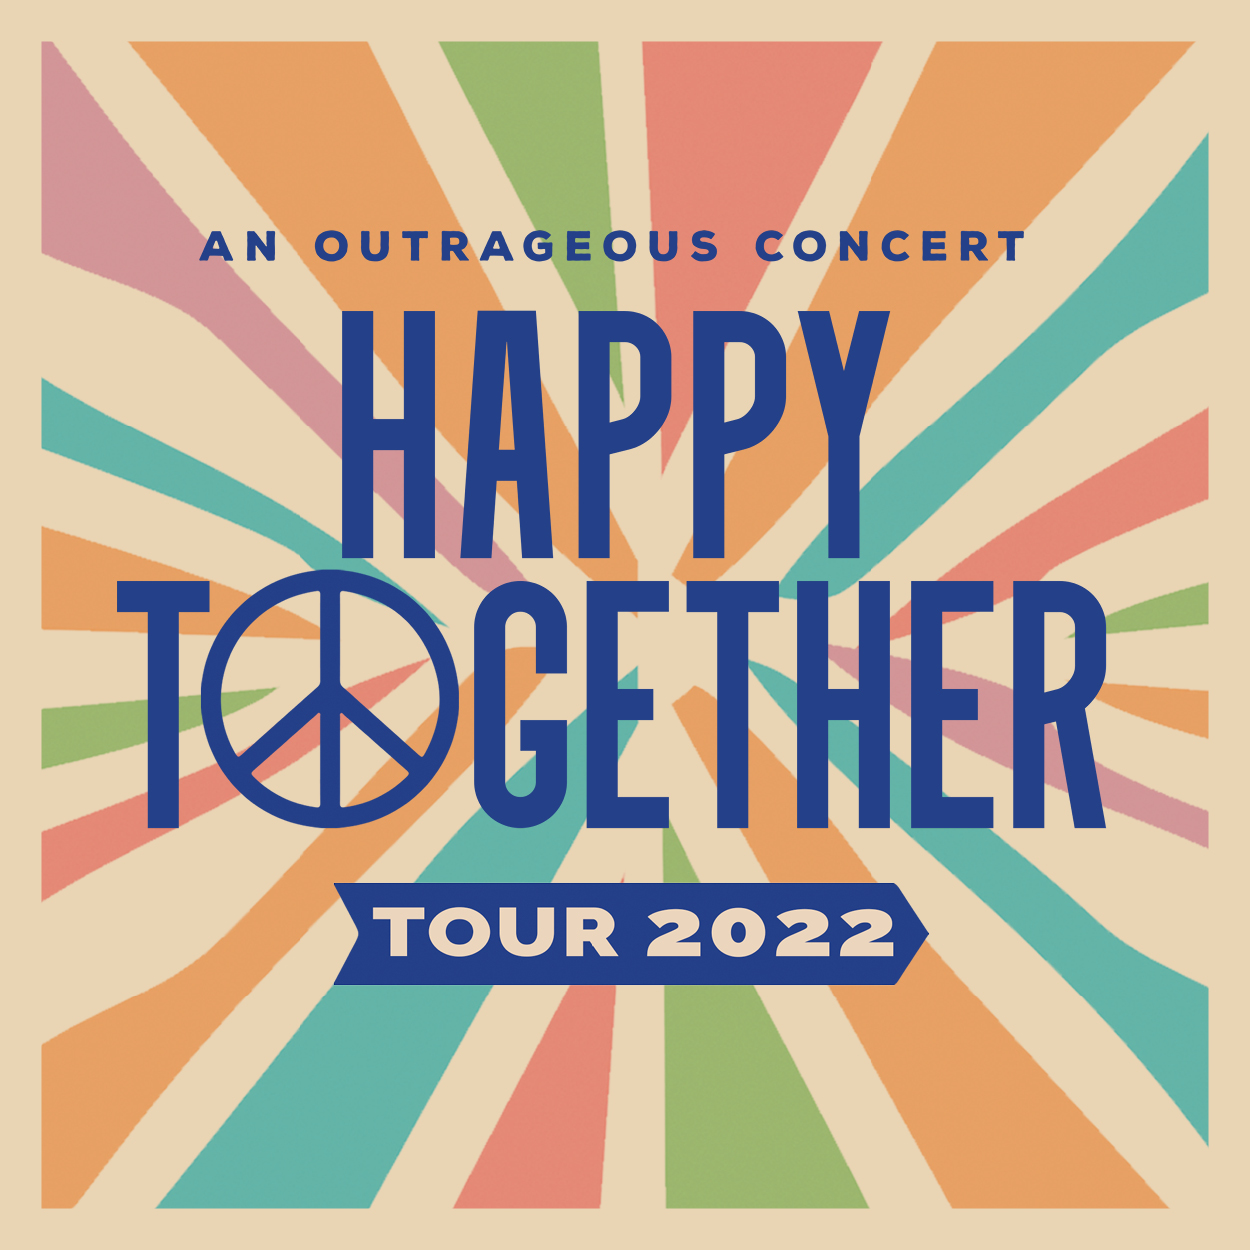 Happy Together Tour 2022 featuring The Turtles, Chuck Negron, The Association, Mark Lindsay, The Vogues and The Cowsills